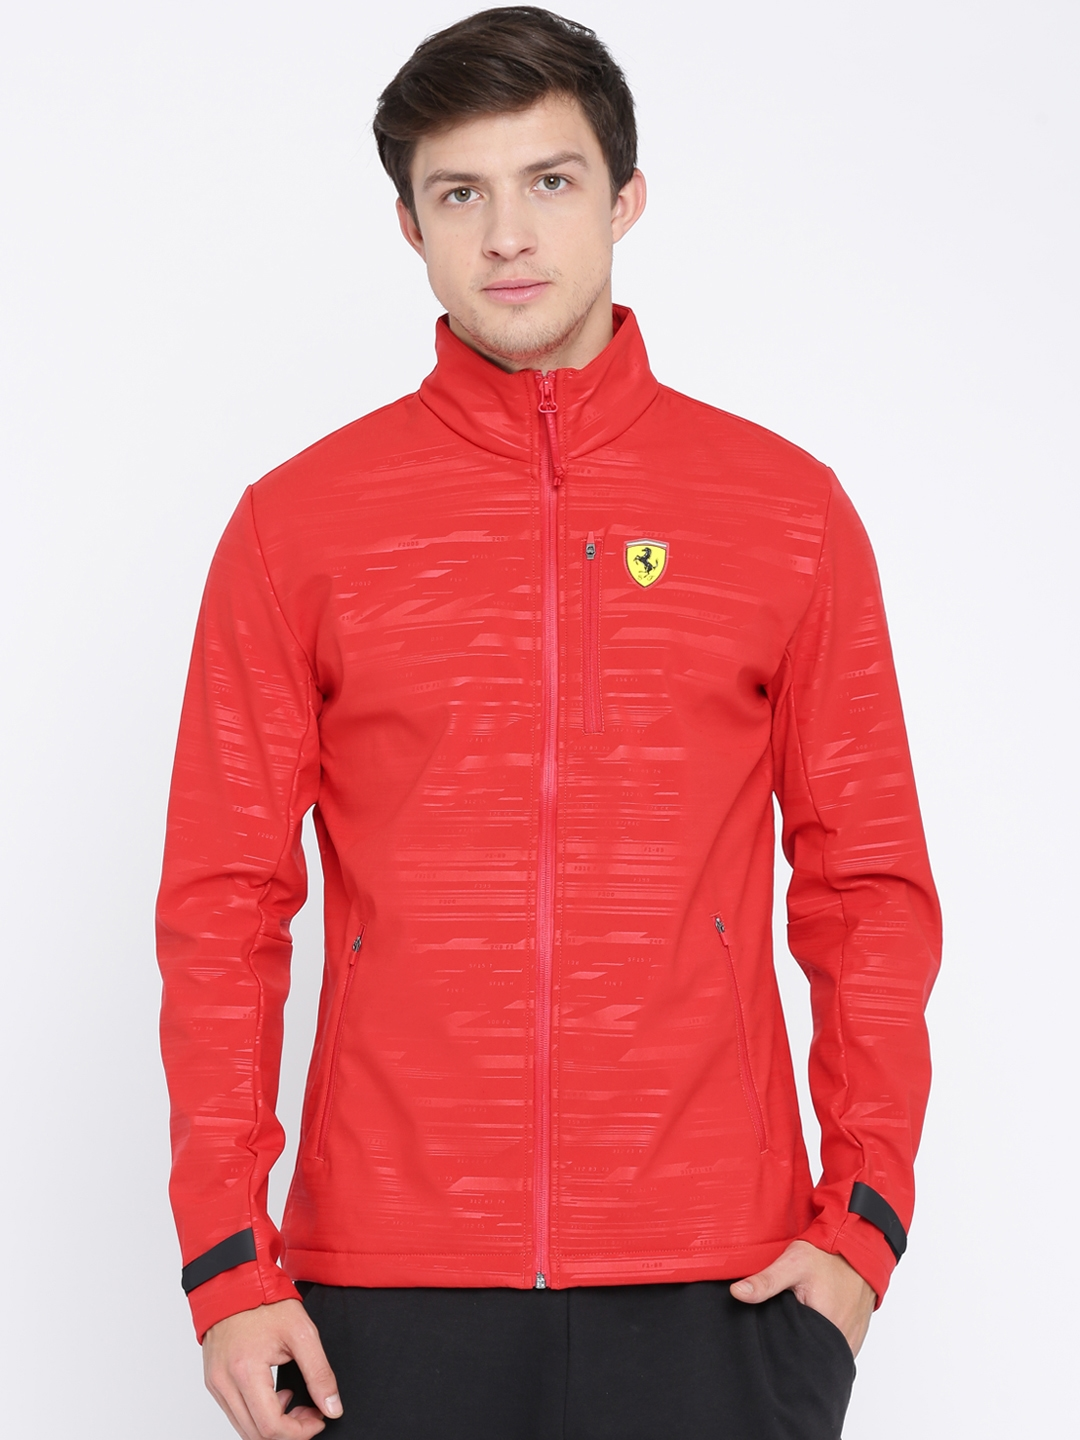 36d43d762473e9 Buy Puma Ferrari Men Red SF Softshell Printed Sporty Jacket ...